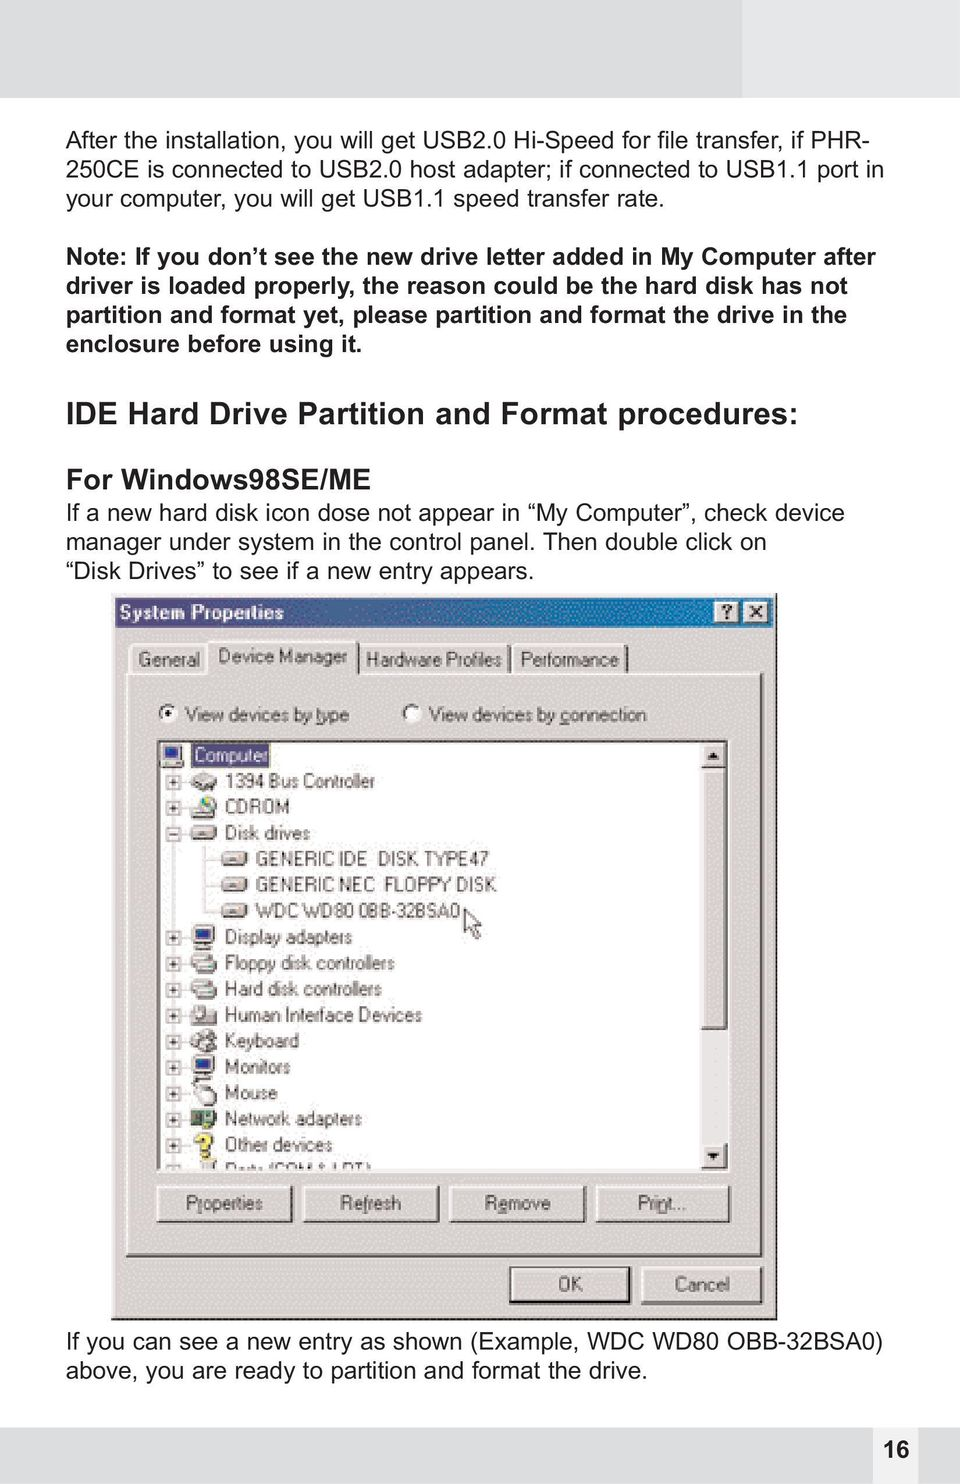 Note: If you don t see the new drive letter added in My Computer after driver is loaded properly, the reason could be the hard disk has not partition and format yet, please partition and format the